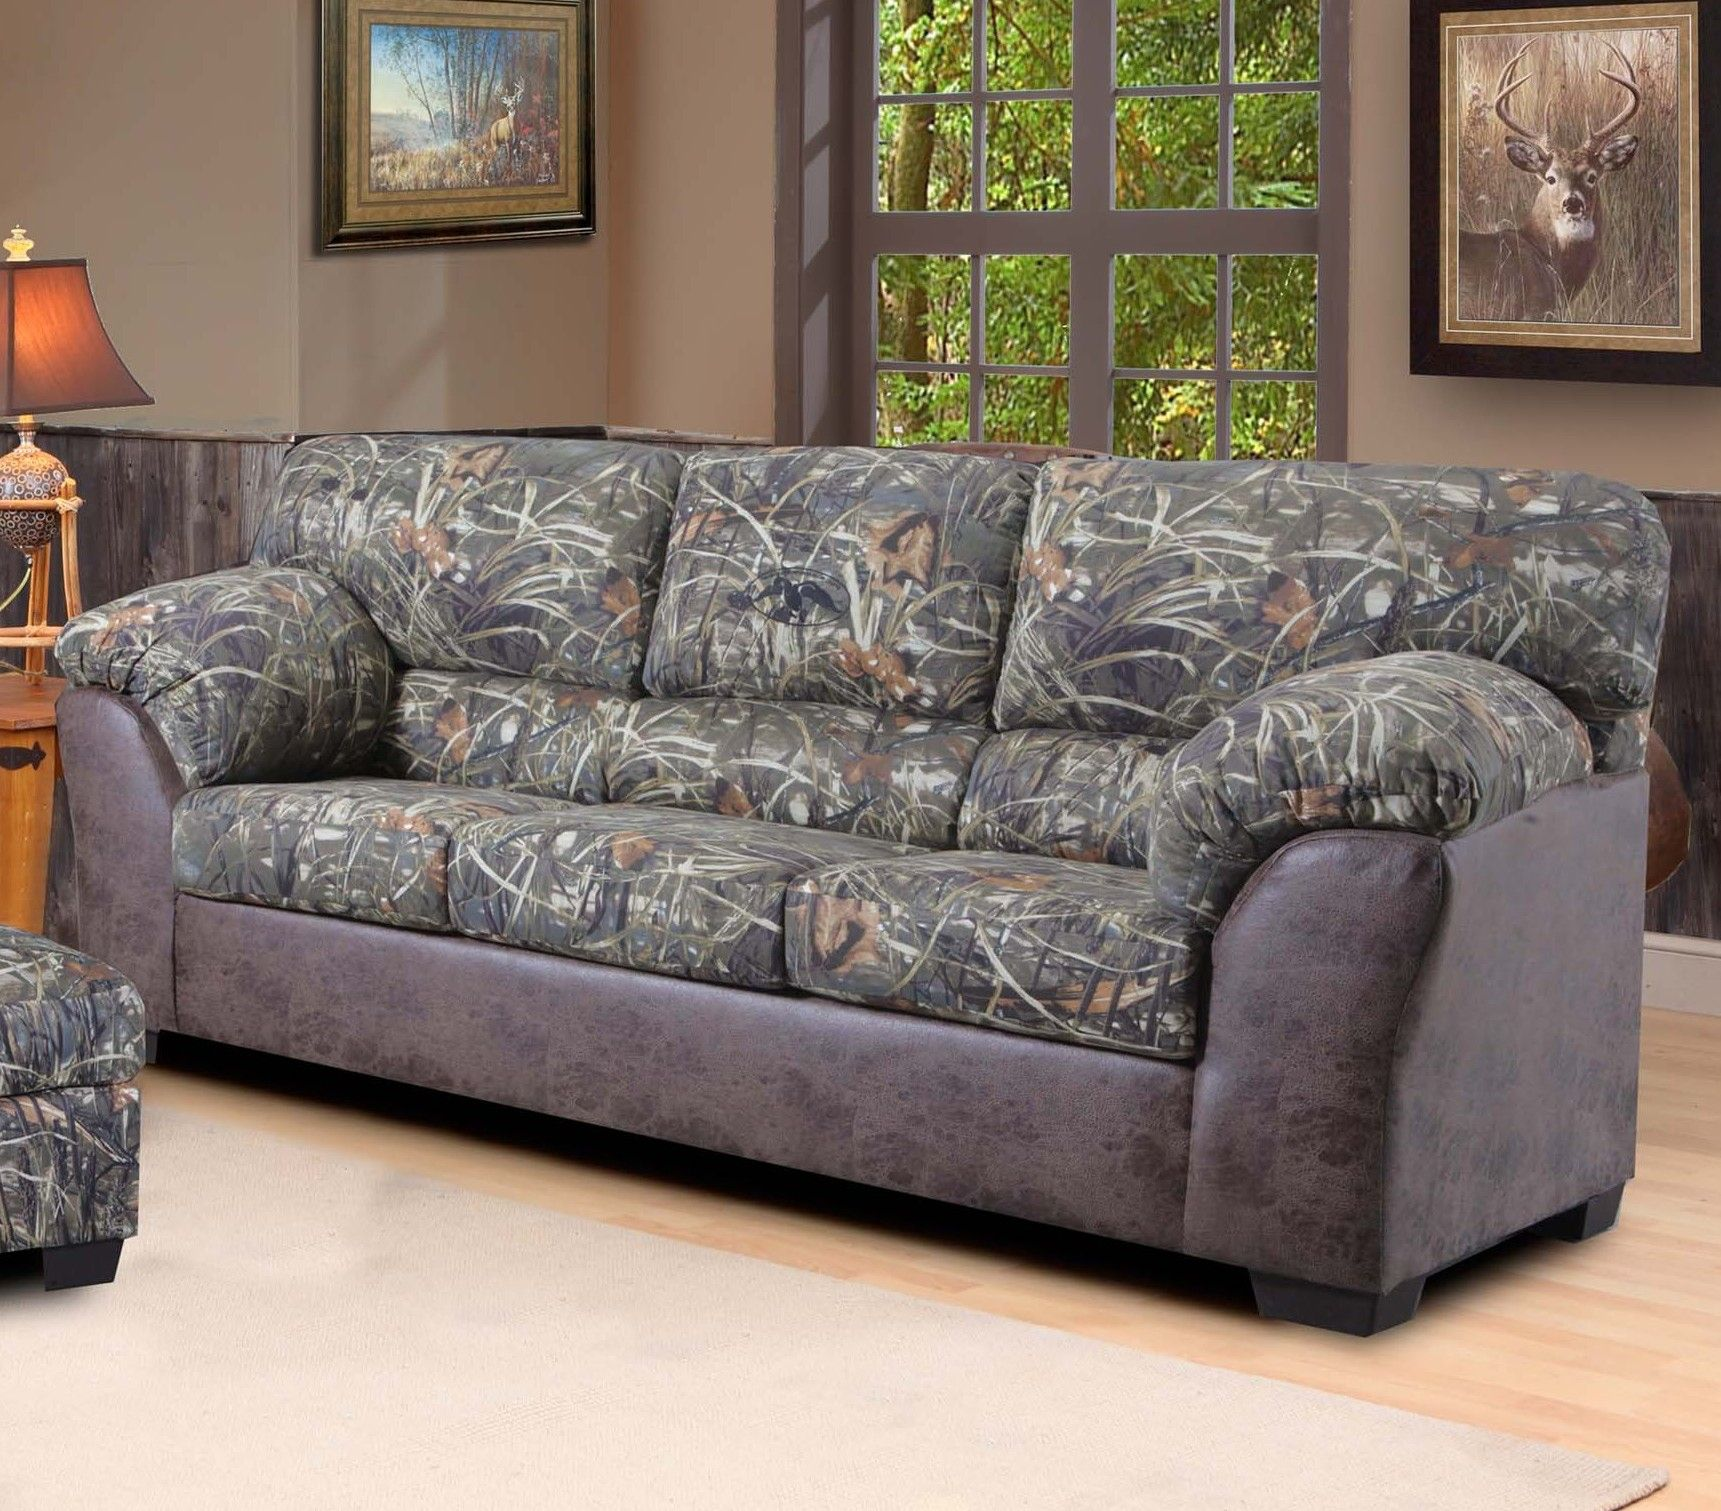 child size leather sofa modern set duck commander in camouflage fabric the